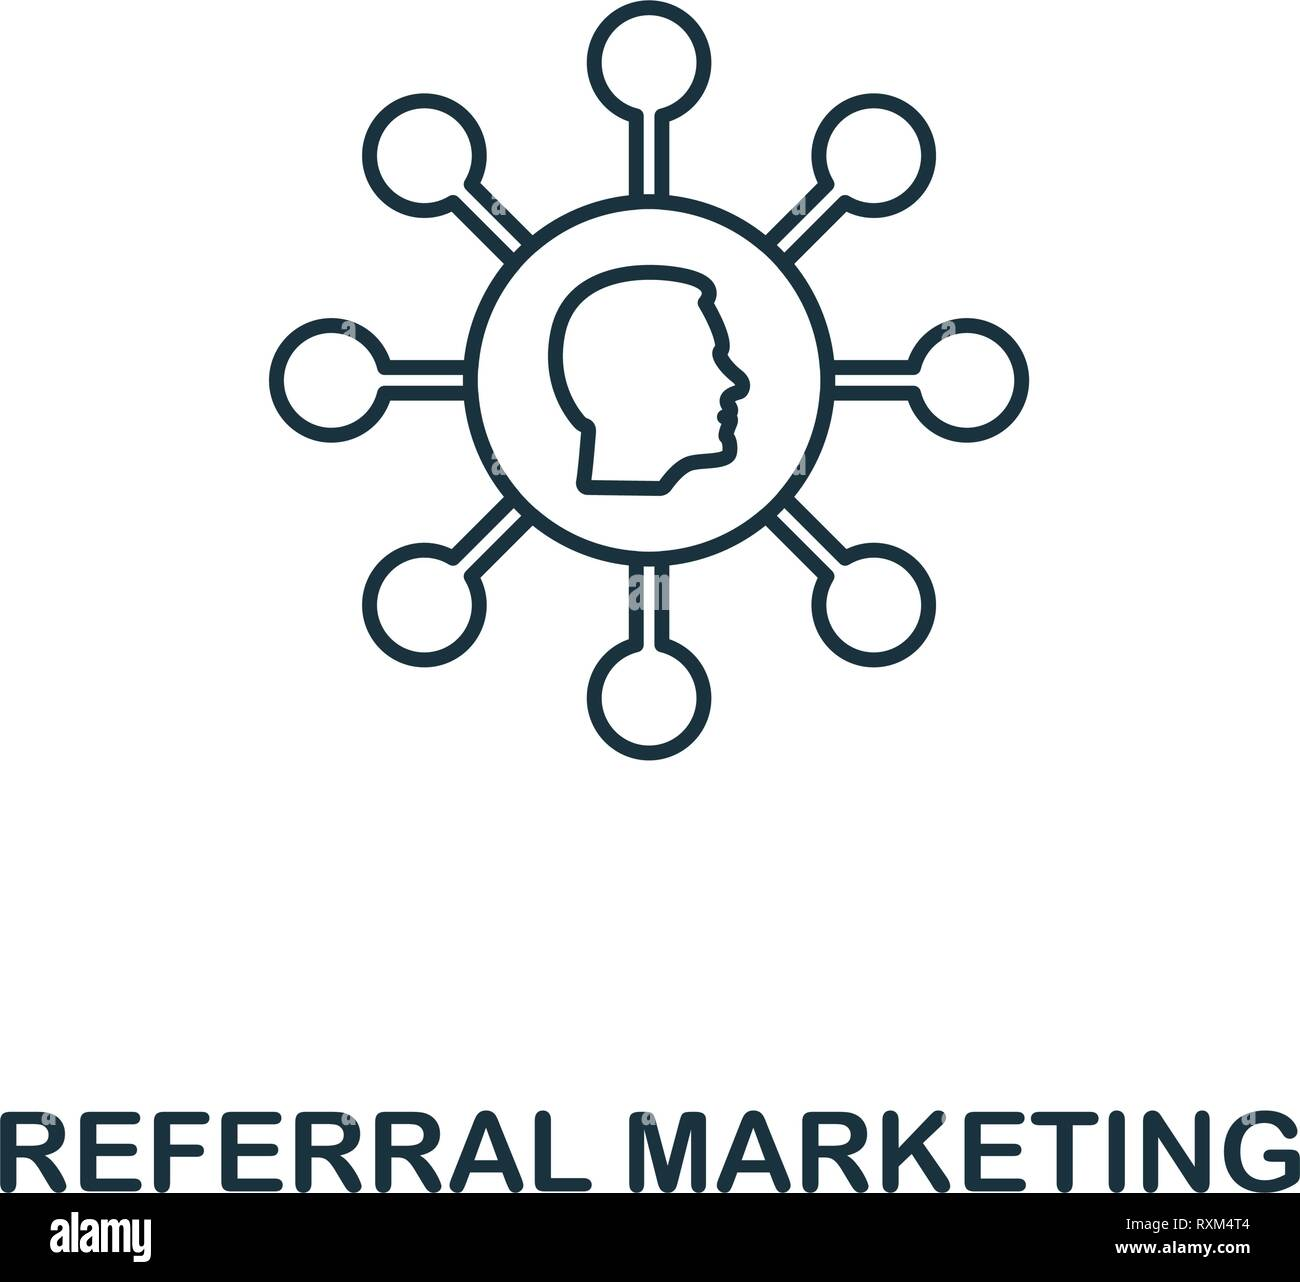 Referral Marketing icon thin line style. Symbol from online marketing icons collection. Outline referral marketing icon for web design, apps, software - Stock Image